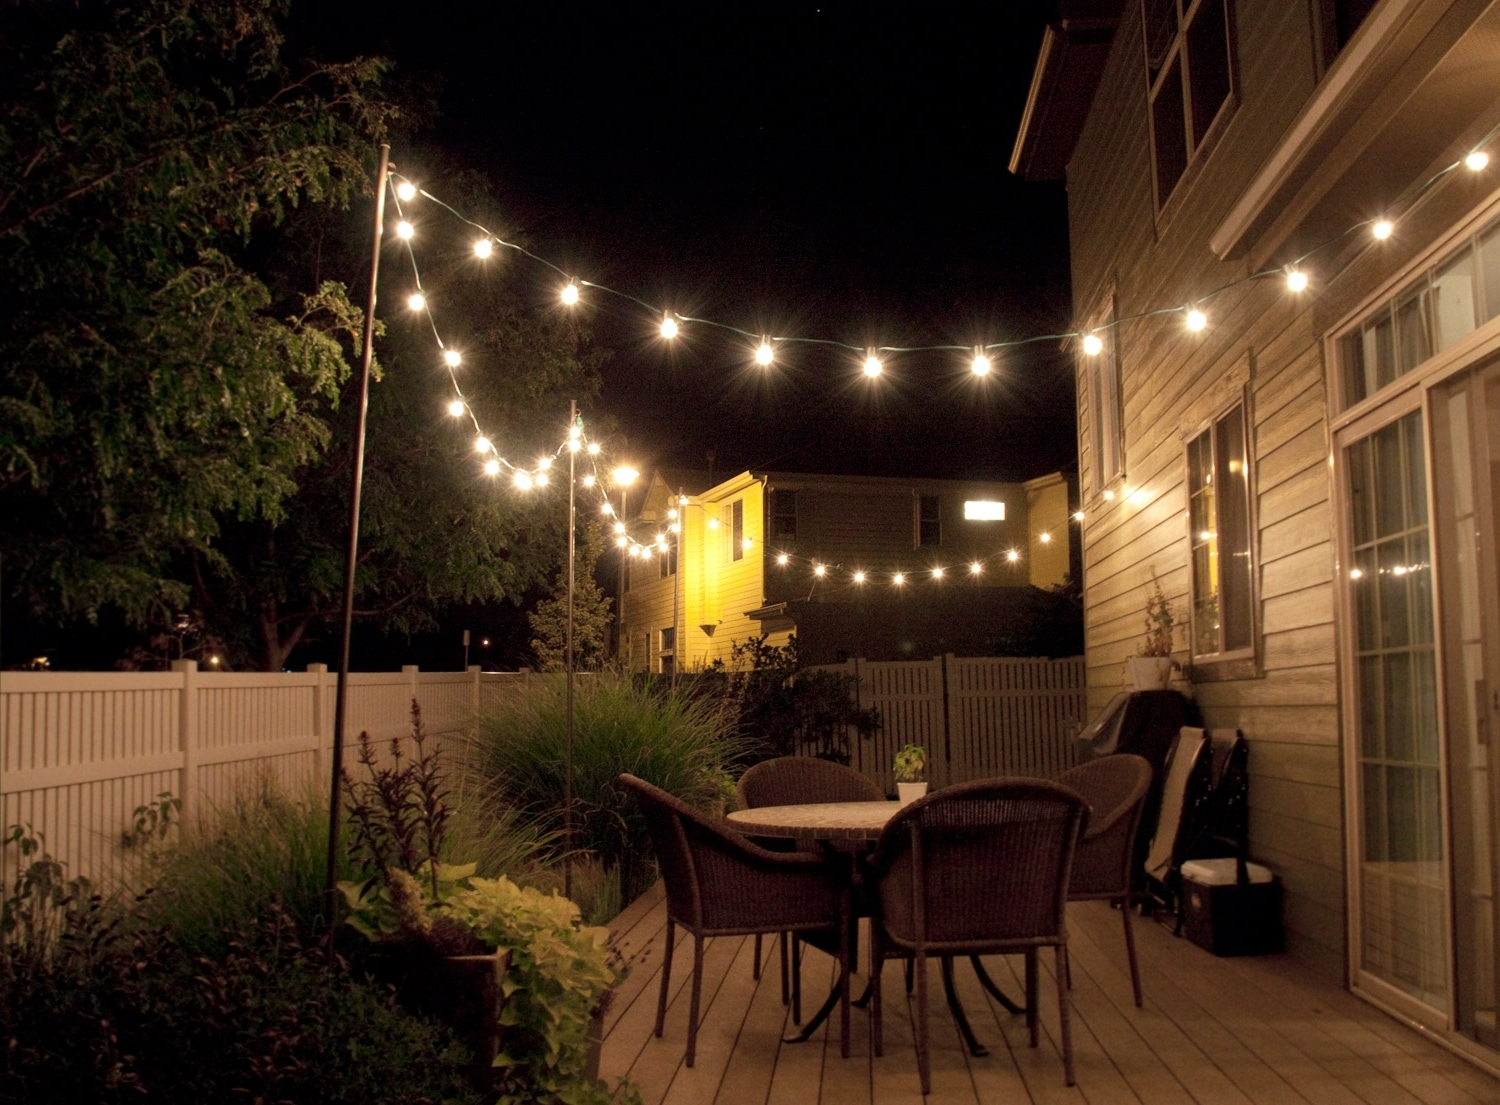 Diy Outdoor String Lights In Patio Idea Outdoor Patio String Light Intended For 2018 Outdoor String Lights At Target (Gallery 1 of 20)